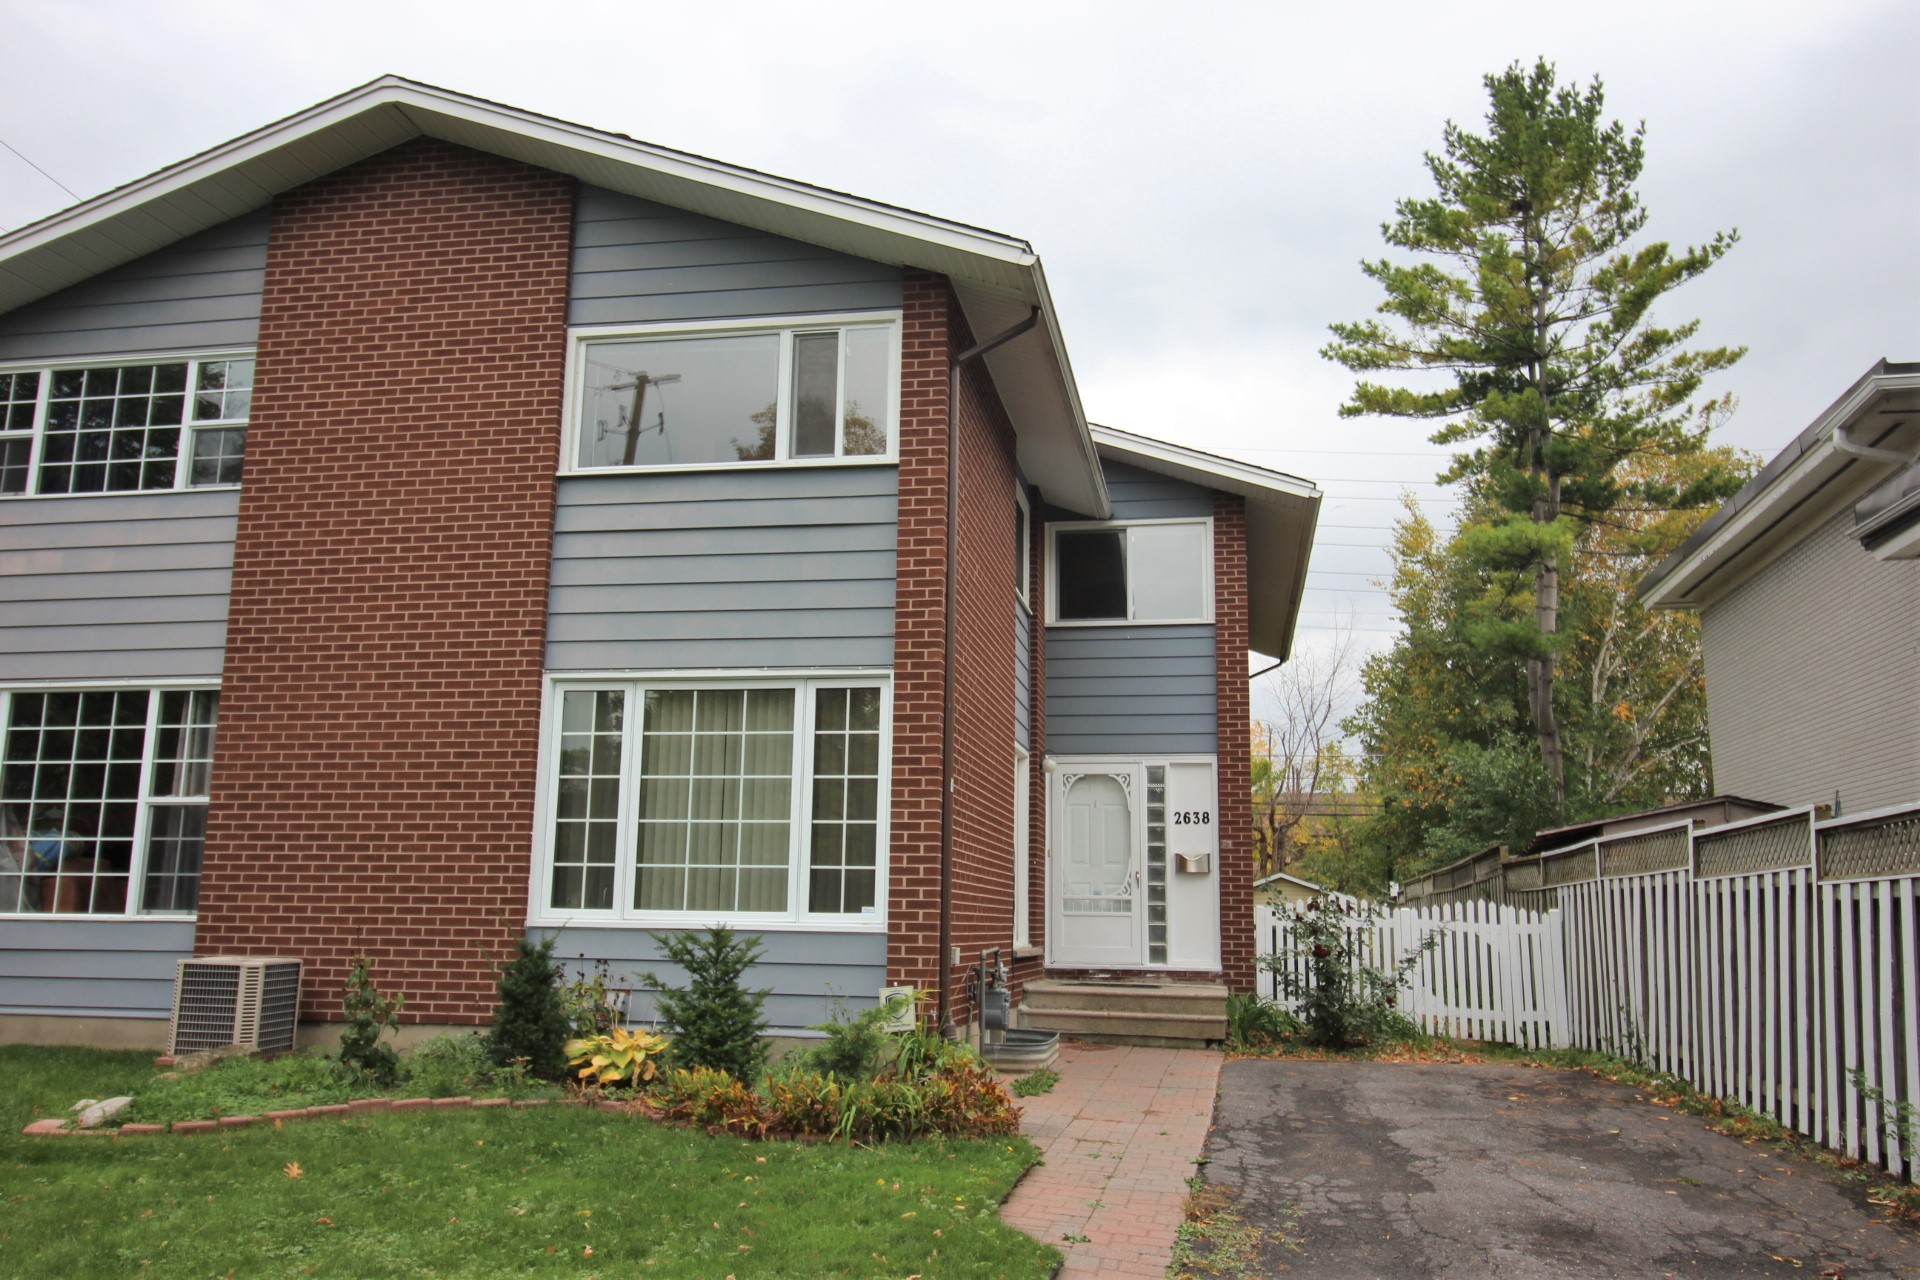 2638 Moncton Rd - Nicely Situated Semi-Detached 5 Bedroom Home in Queensway Terrace North!